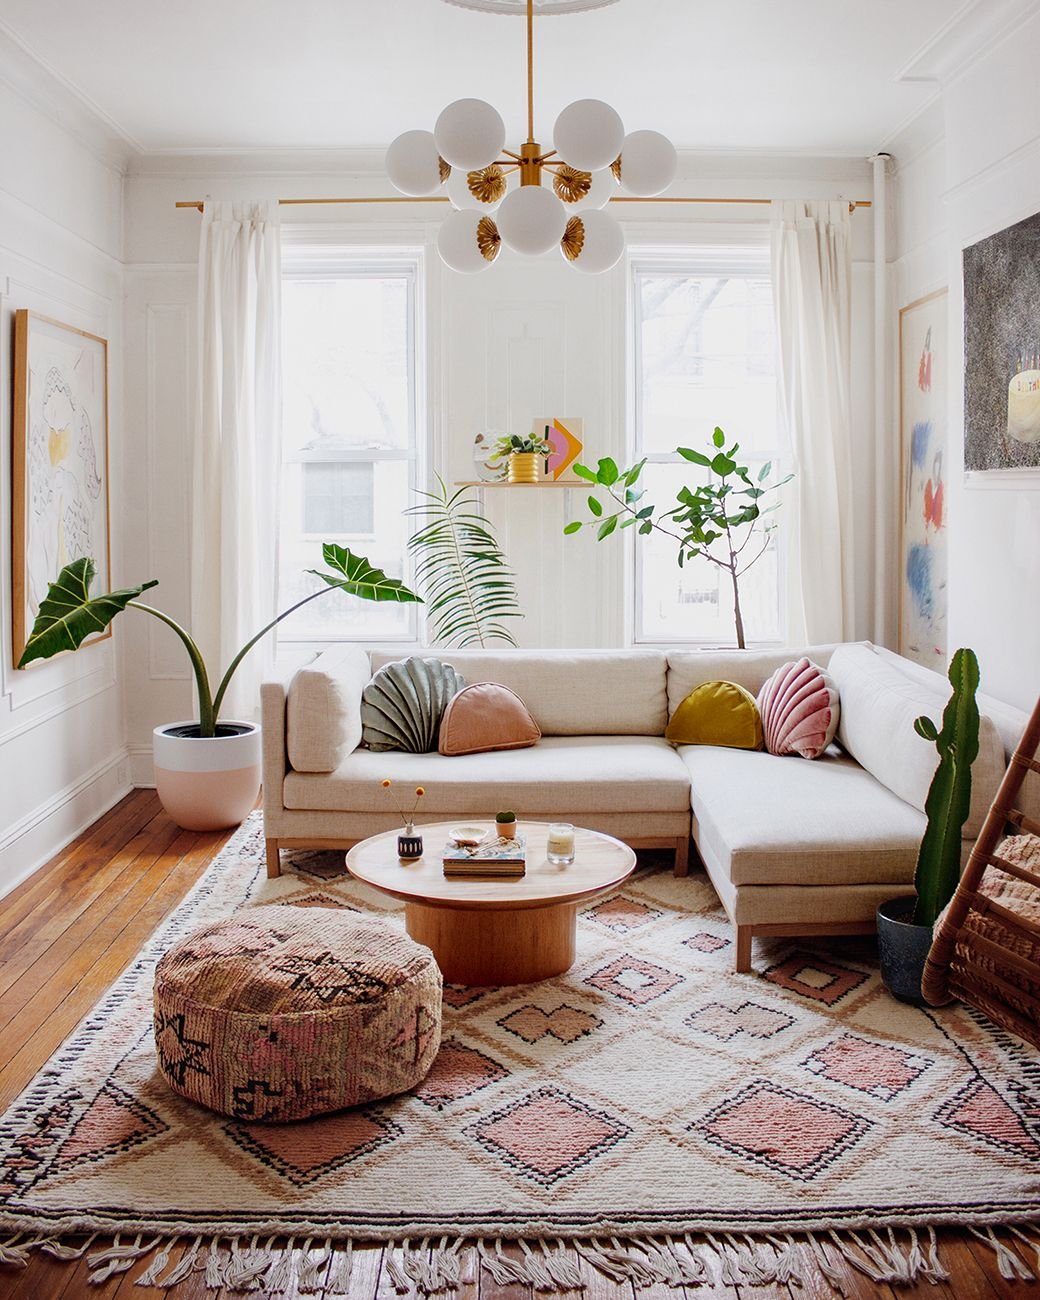 Small Boho Living Room: Colorful Bohemian Modern Brooklyn Apartment + How To Get